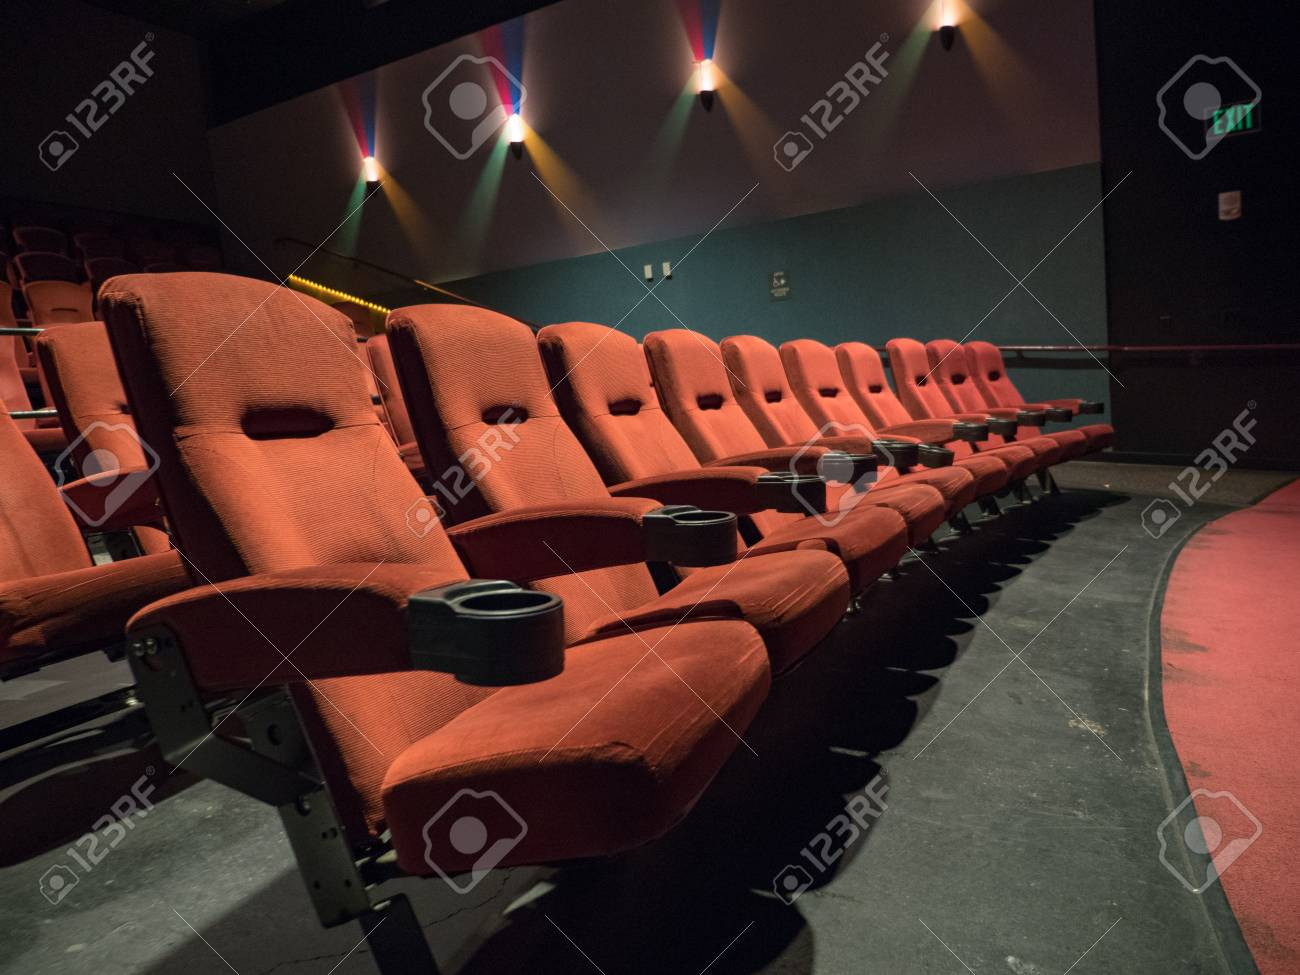 Old School Movie Theater Orange Seats Front Row Stock Photo Picture And Royalty Free Image Image 99608280